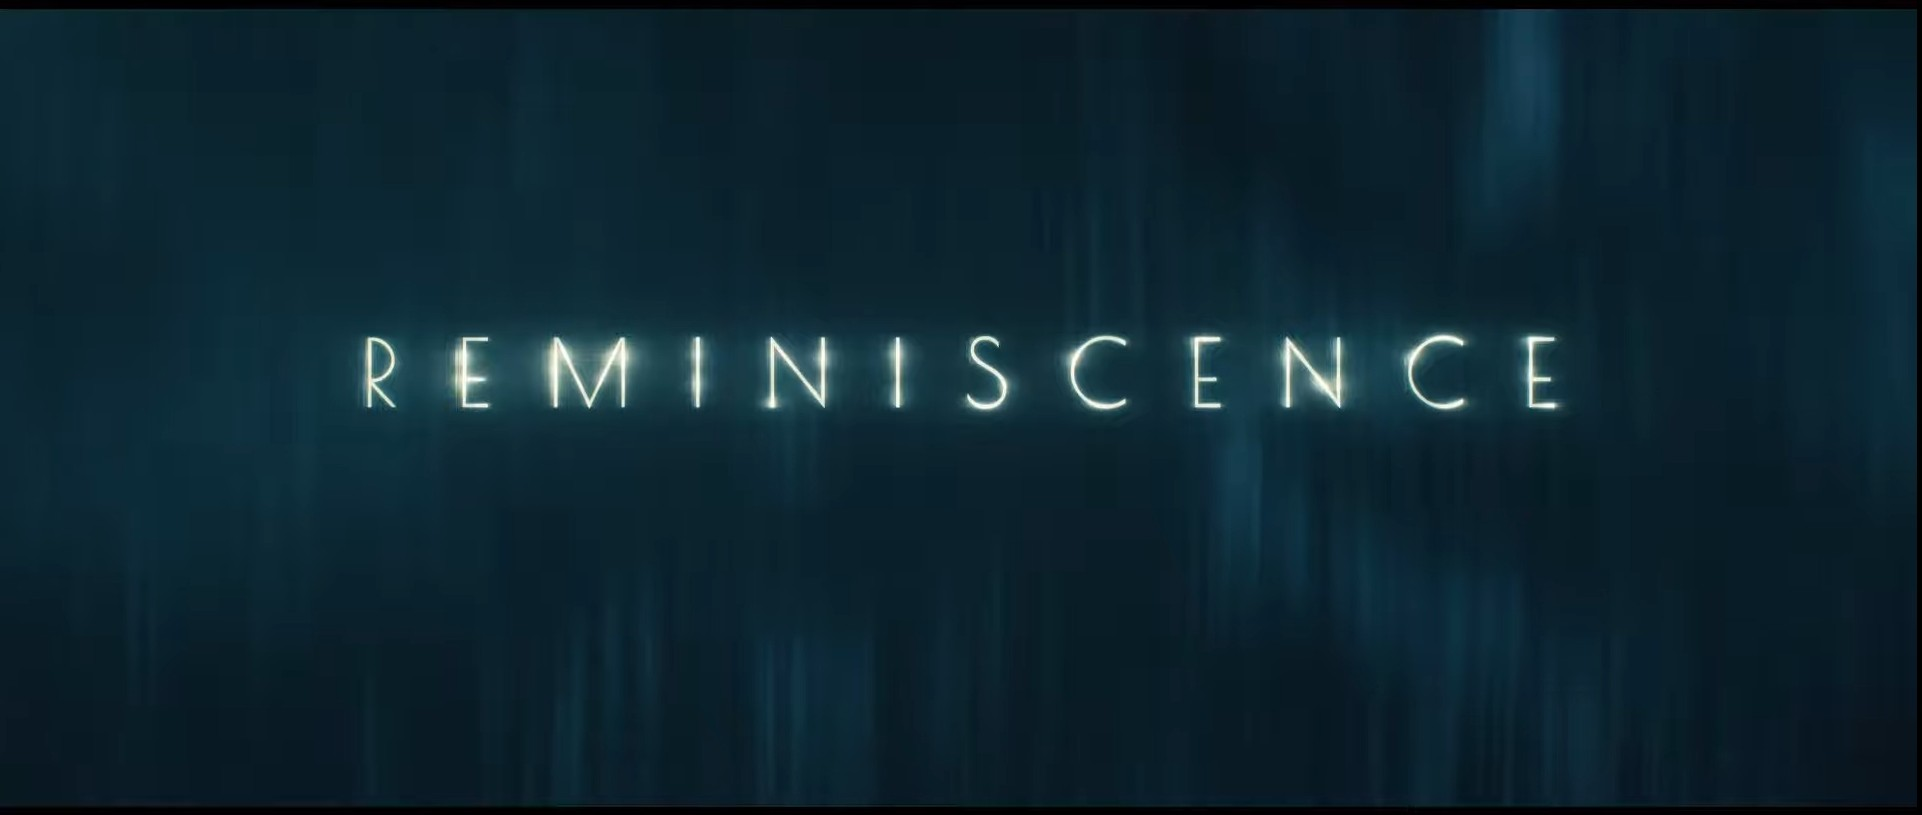 'Reminiscence' - landscape artwork